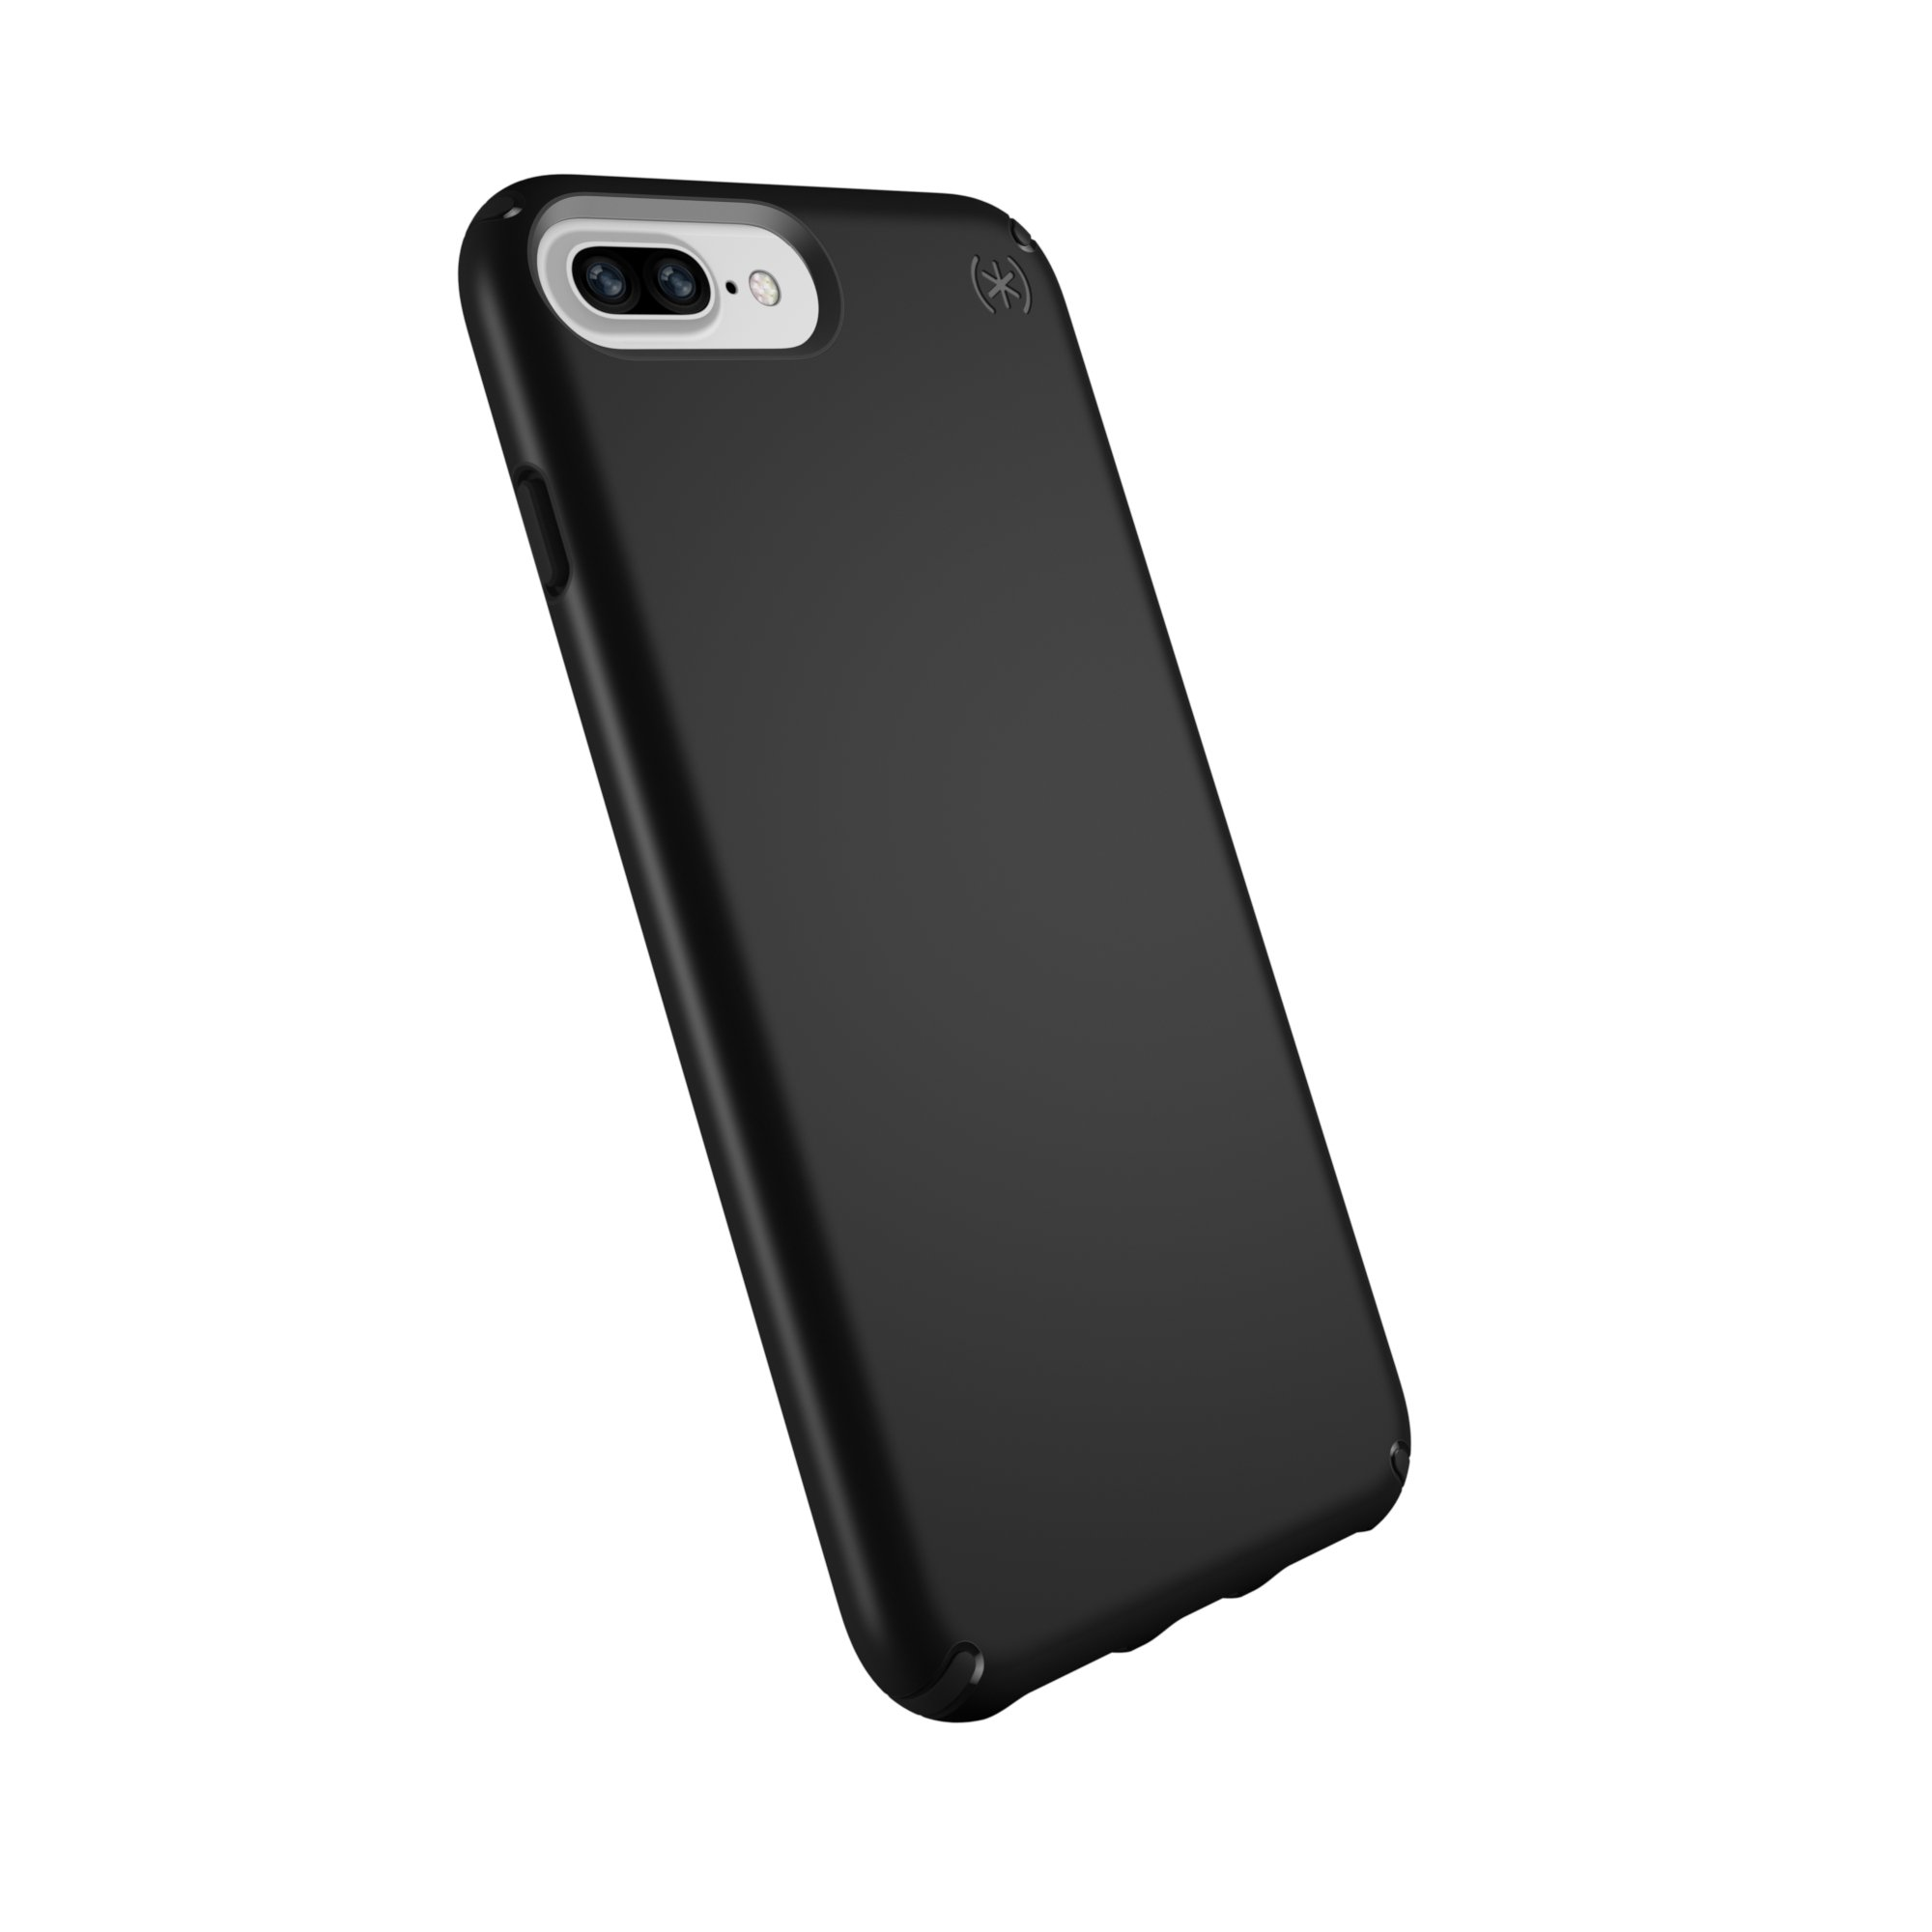 Speck Products Presidio Cell Phone Case for iPhone 8 Plus, iPhone 7 Plus, iPhone 6S Plus, iPhone 6 Plus - Black/Black, 10-Pack Business Packaging